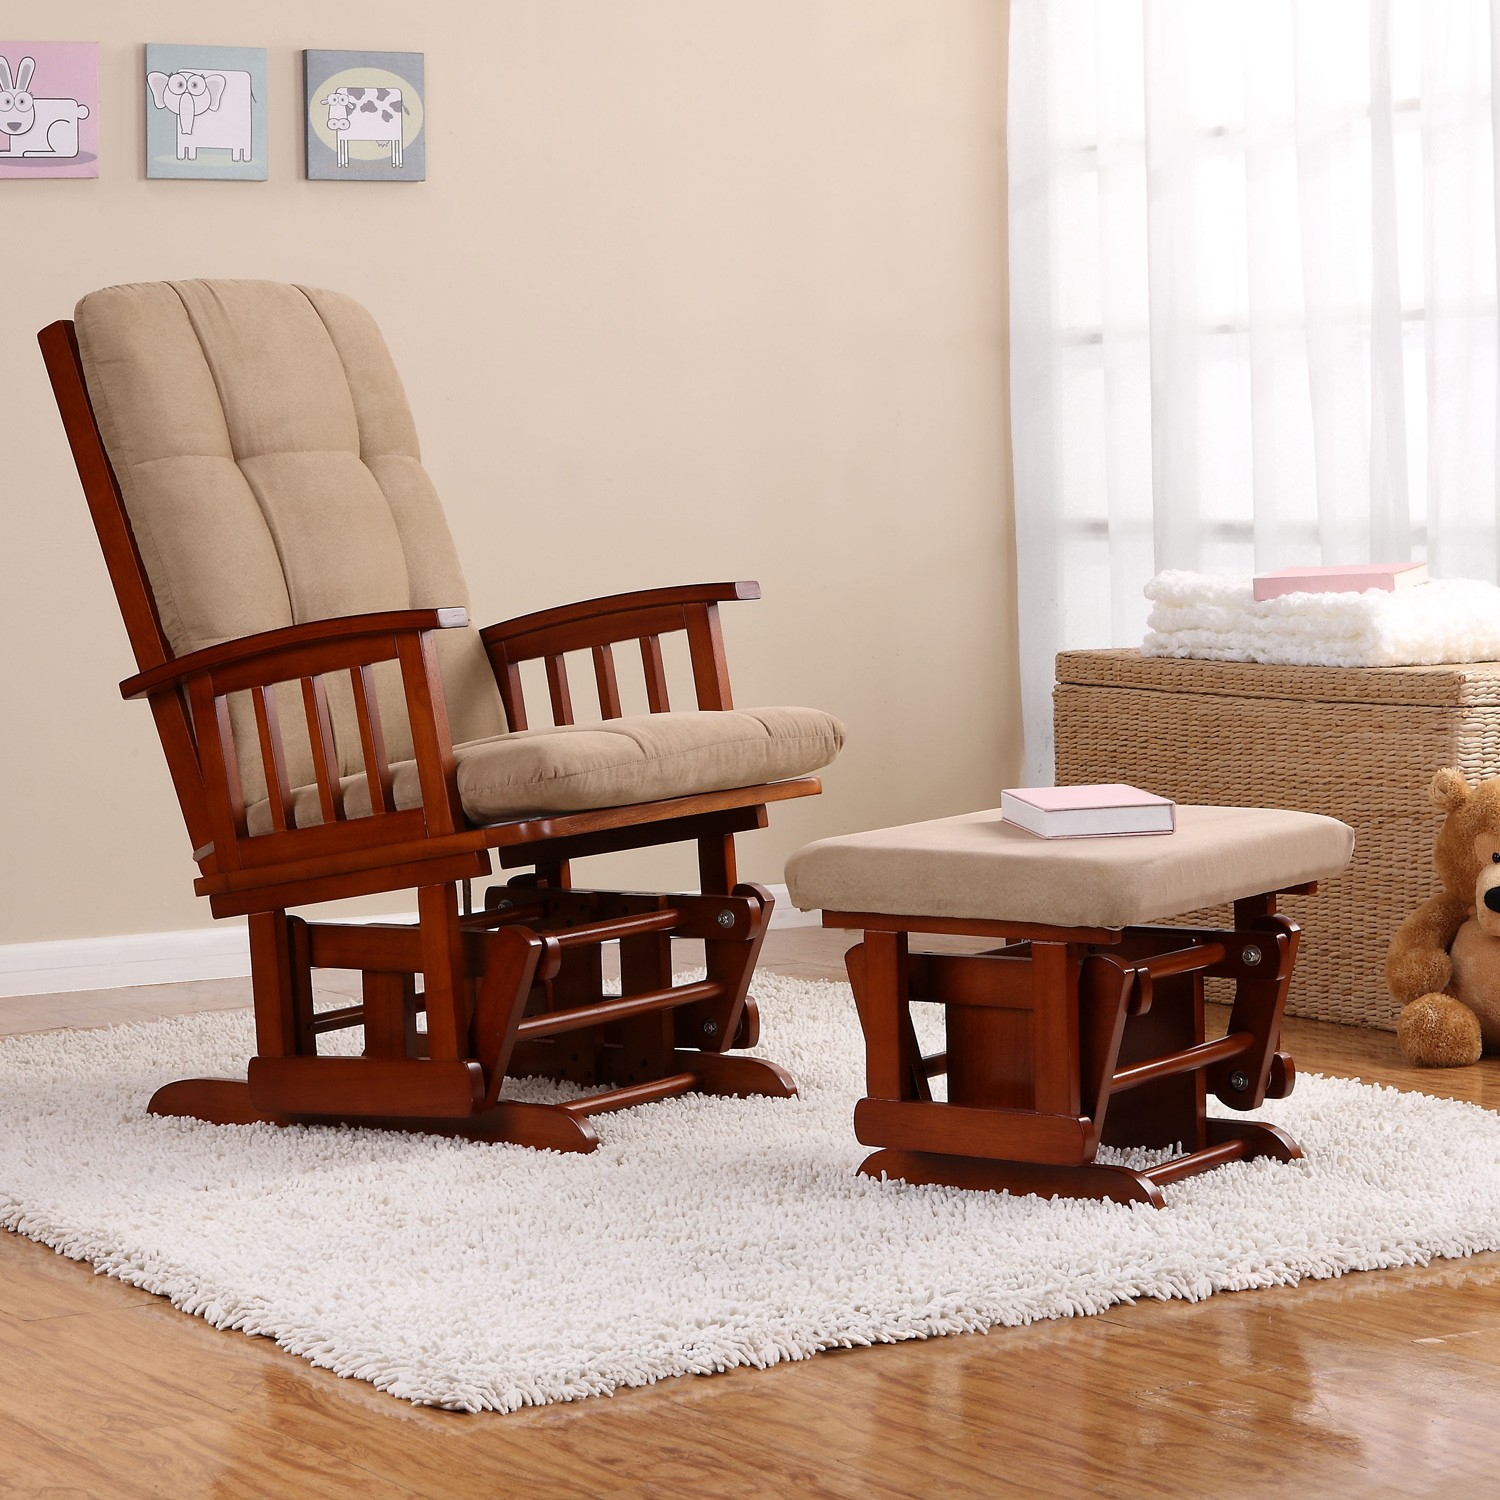 Image of: perfect glider rocking chair